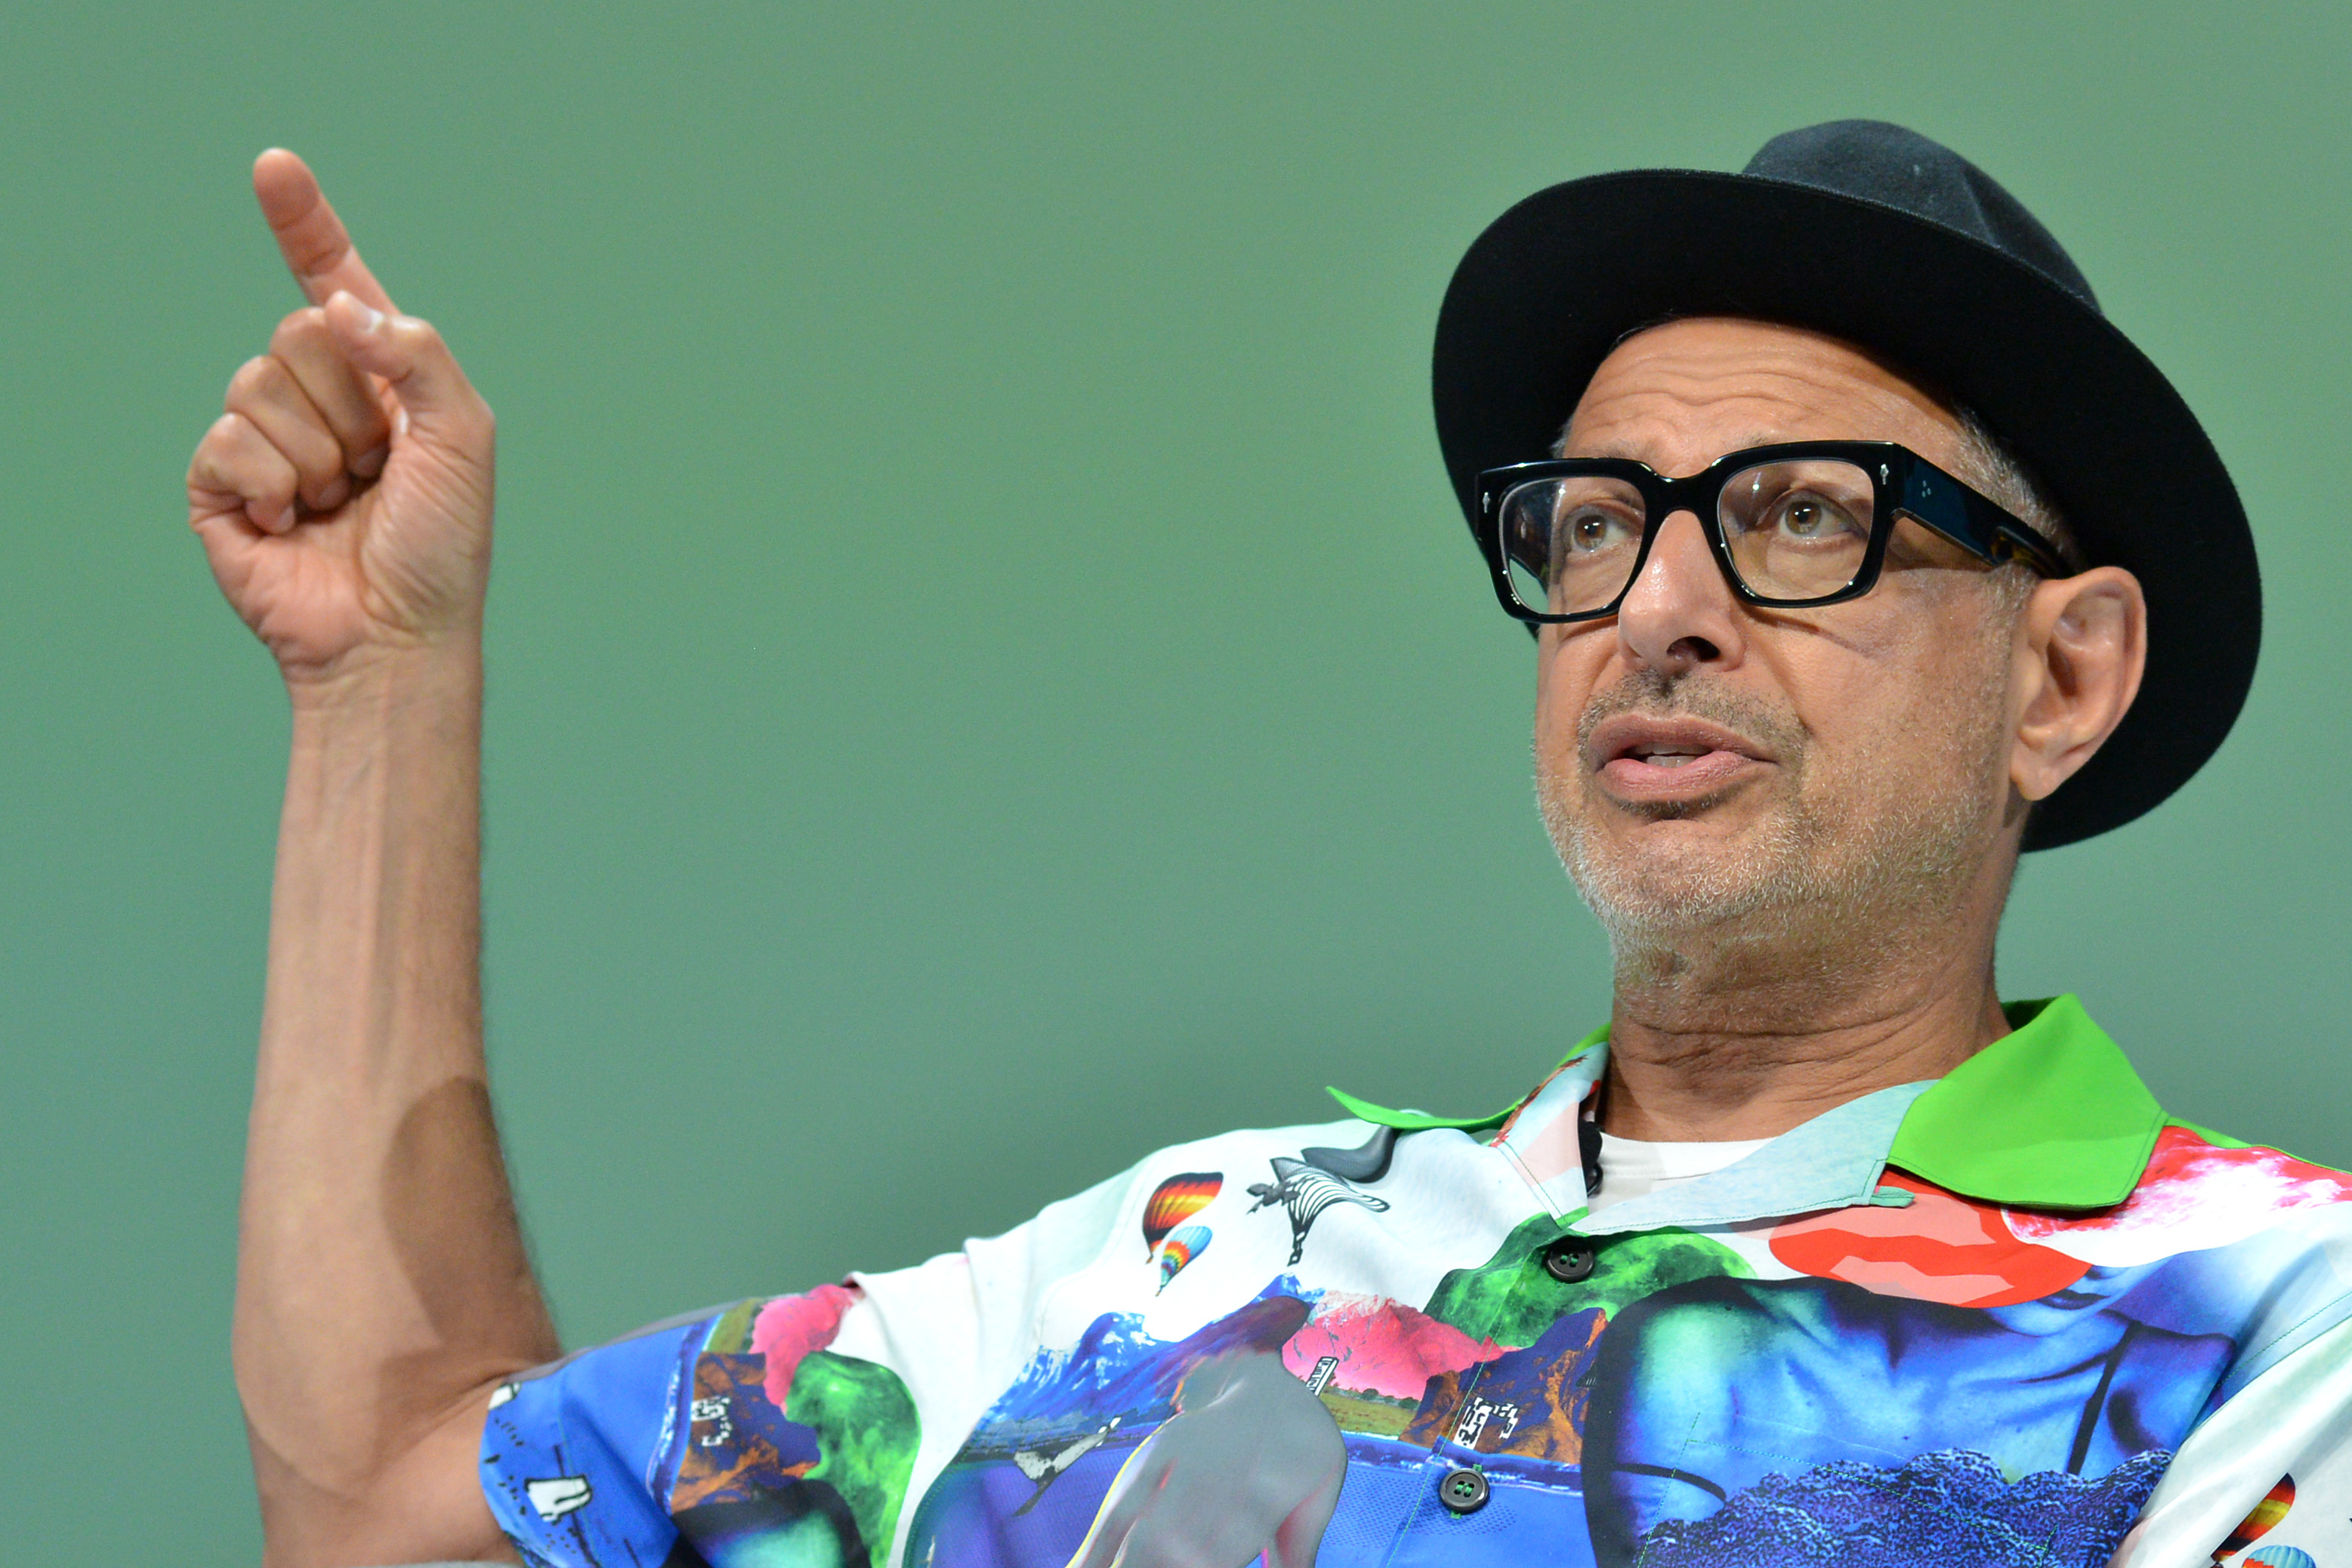 Jeff Goldblum and Lorne Michaels share creativity tips at 2019 Cannes Lions